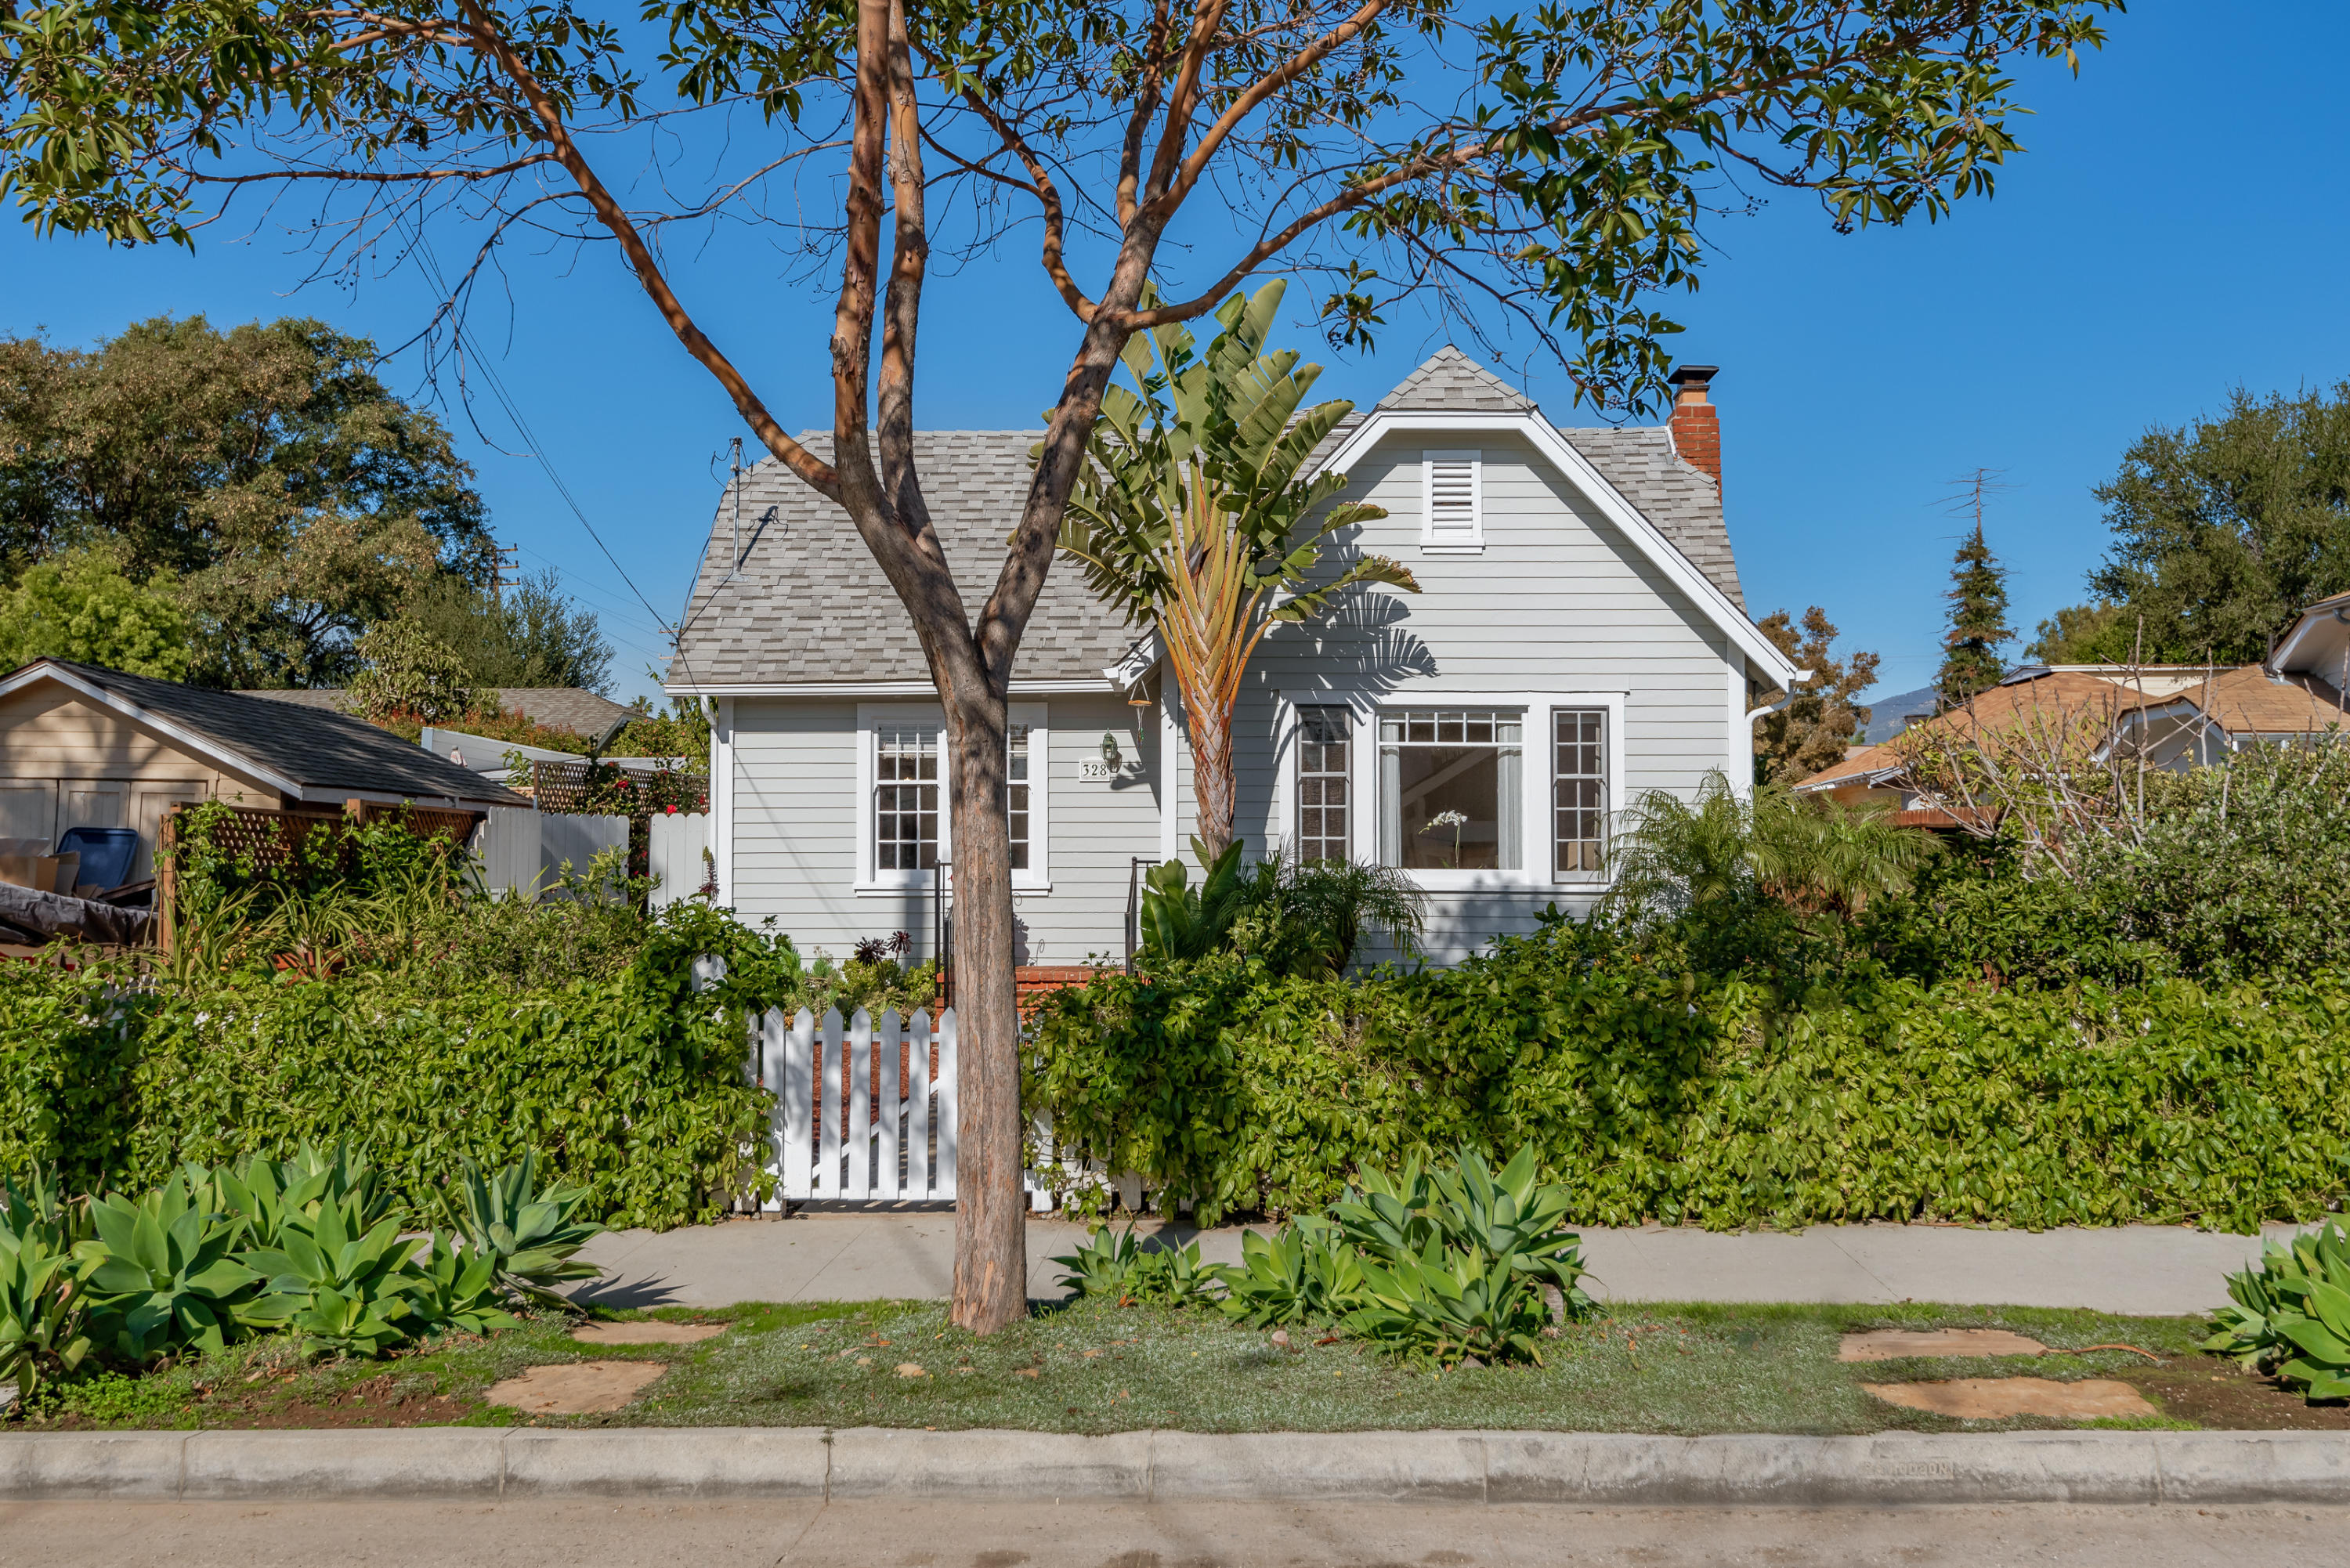 Property photo for 328 W Pedregosa St #A & B Santa Barbara, California 93101 - 19-459